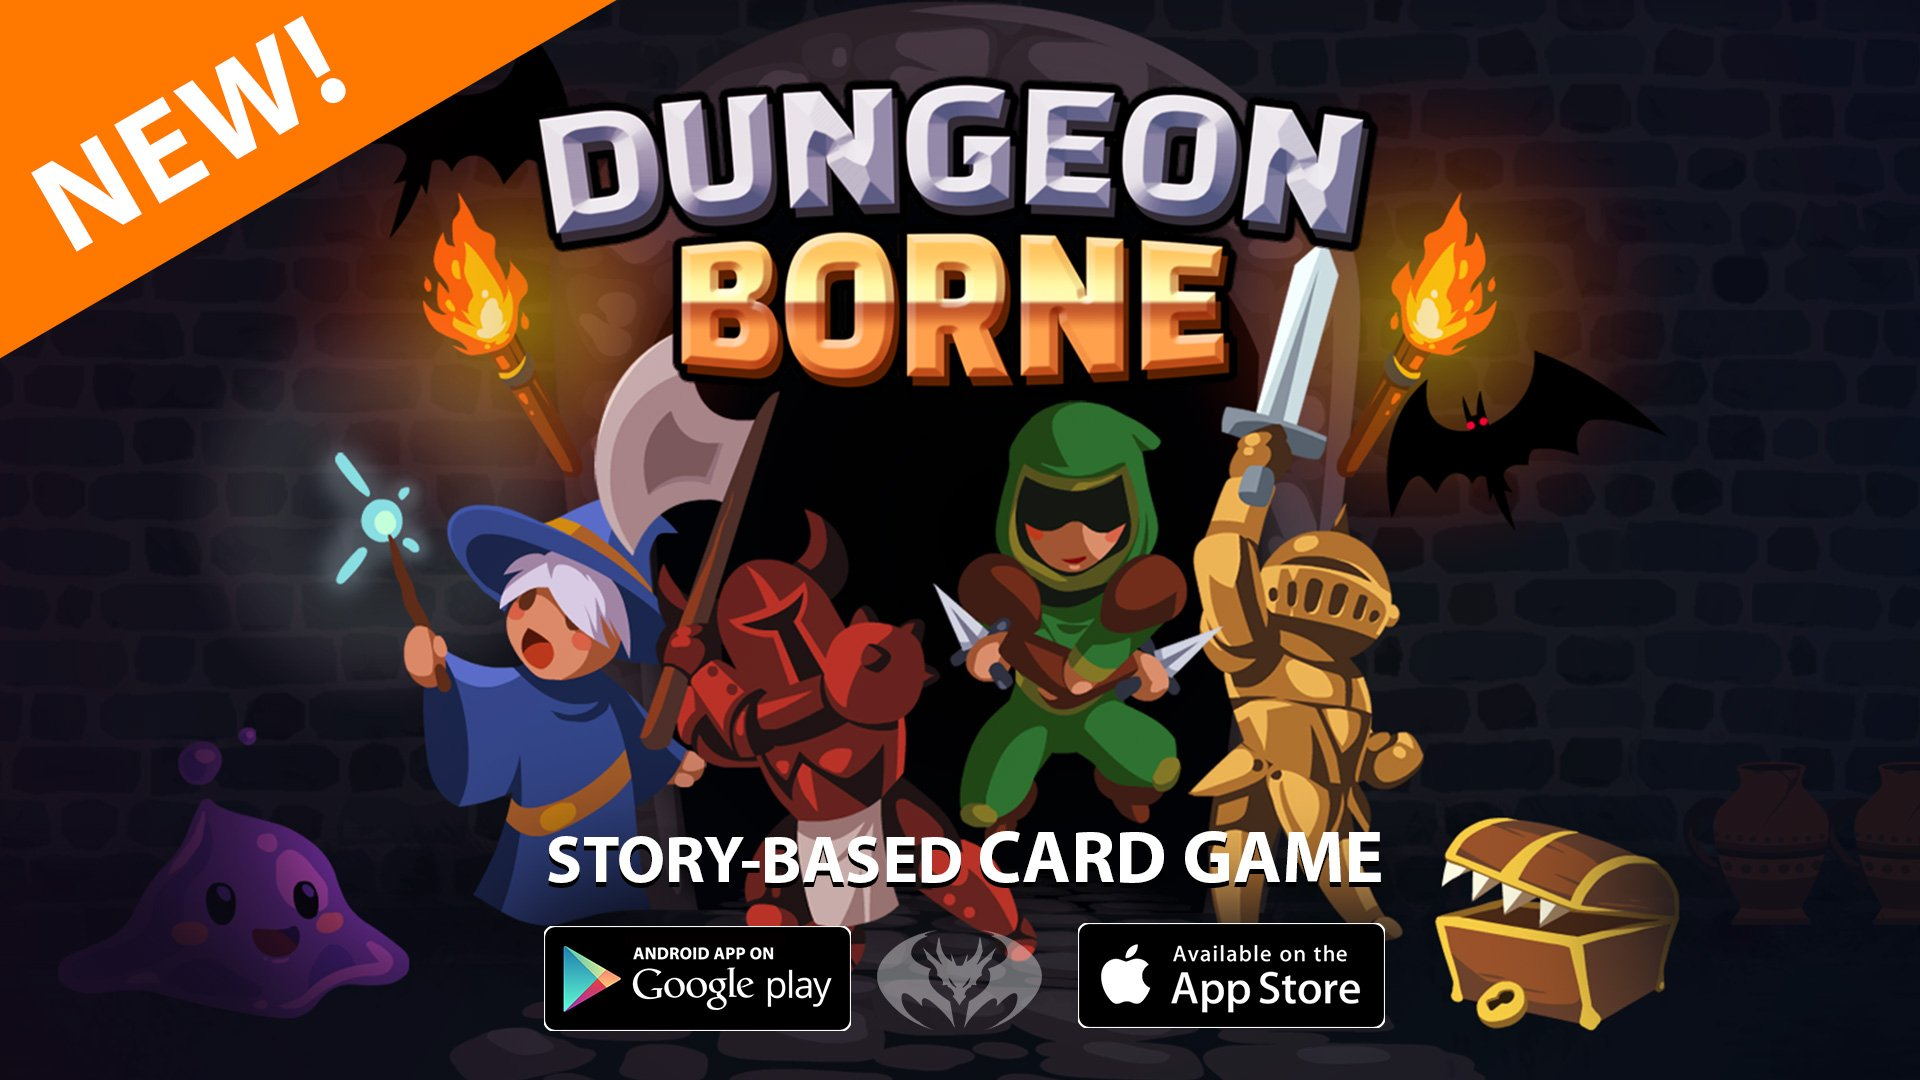 """Alina no Twitter: """"ENTER THE DUNGEON! DungeonBorne, the story-based card game is now available for Android & Apple: https://t.co/hs1vrH7bVL (This is the first game from our January 2019 Game Jam)… https://t.co/x8vMhYqdqU"""""""